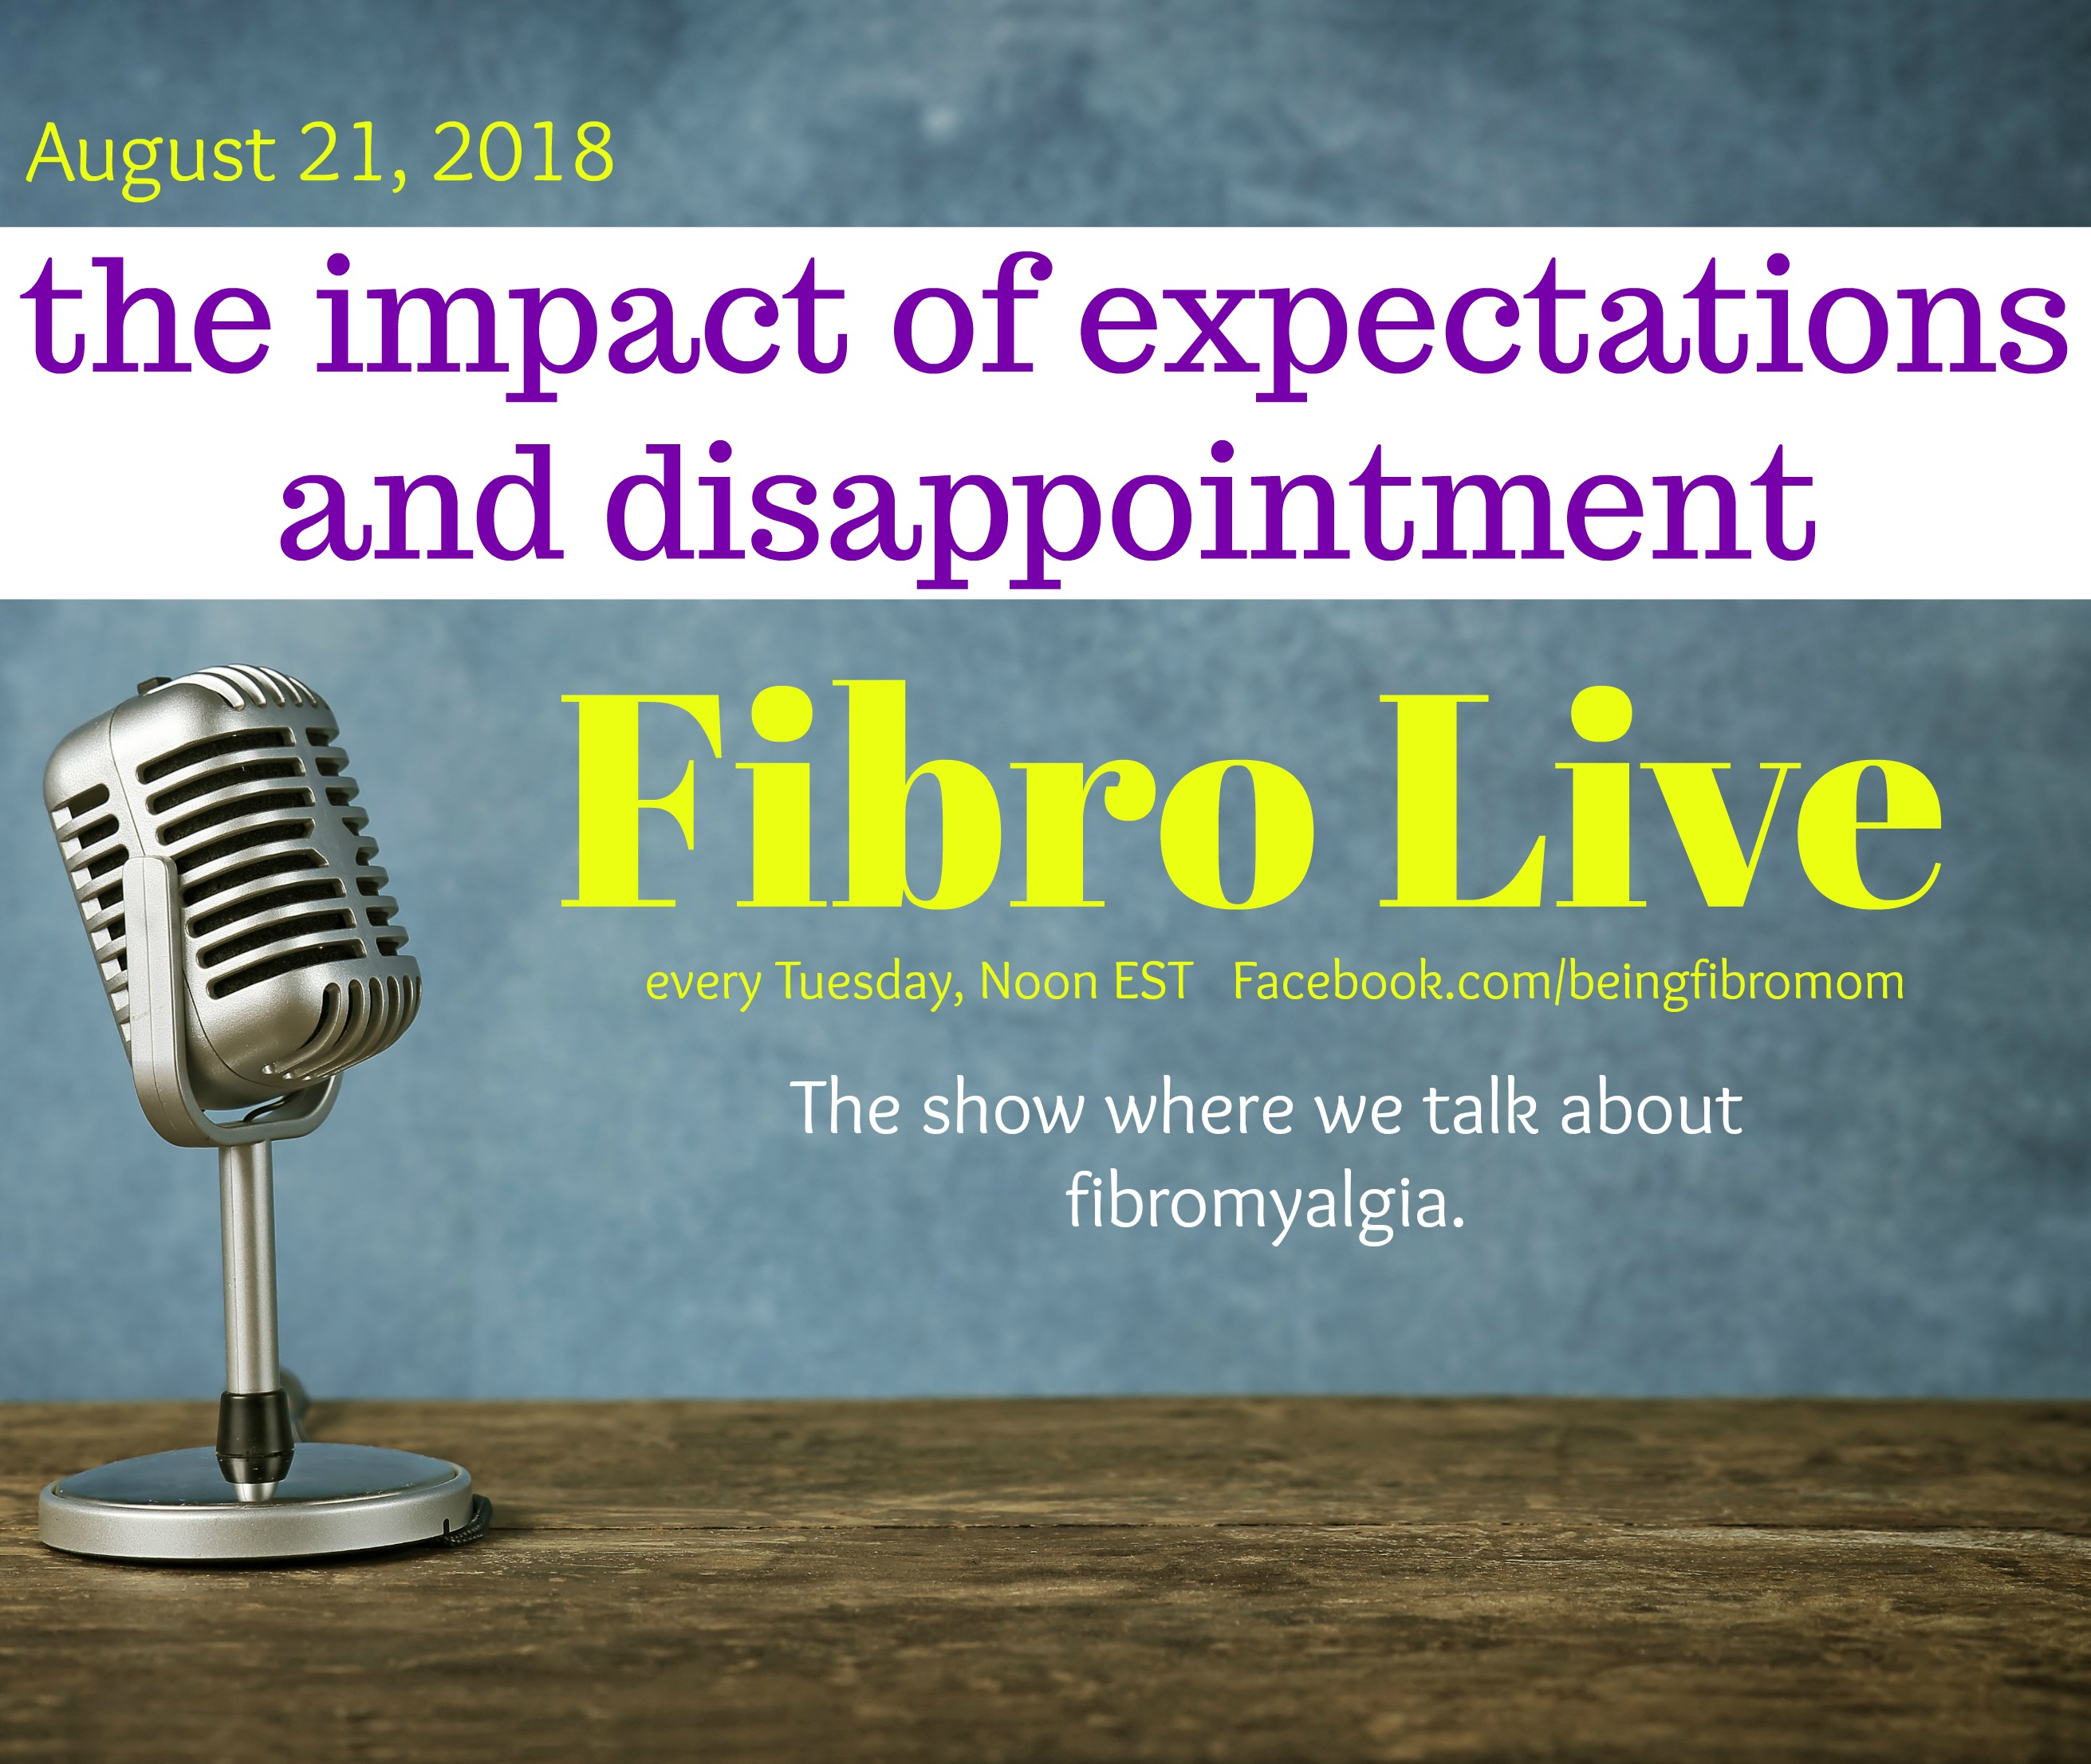 Fibro Live: The Impact of Expectations and Disappointments with a Chronic Illness